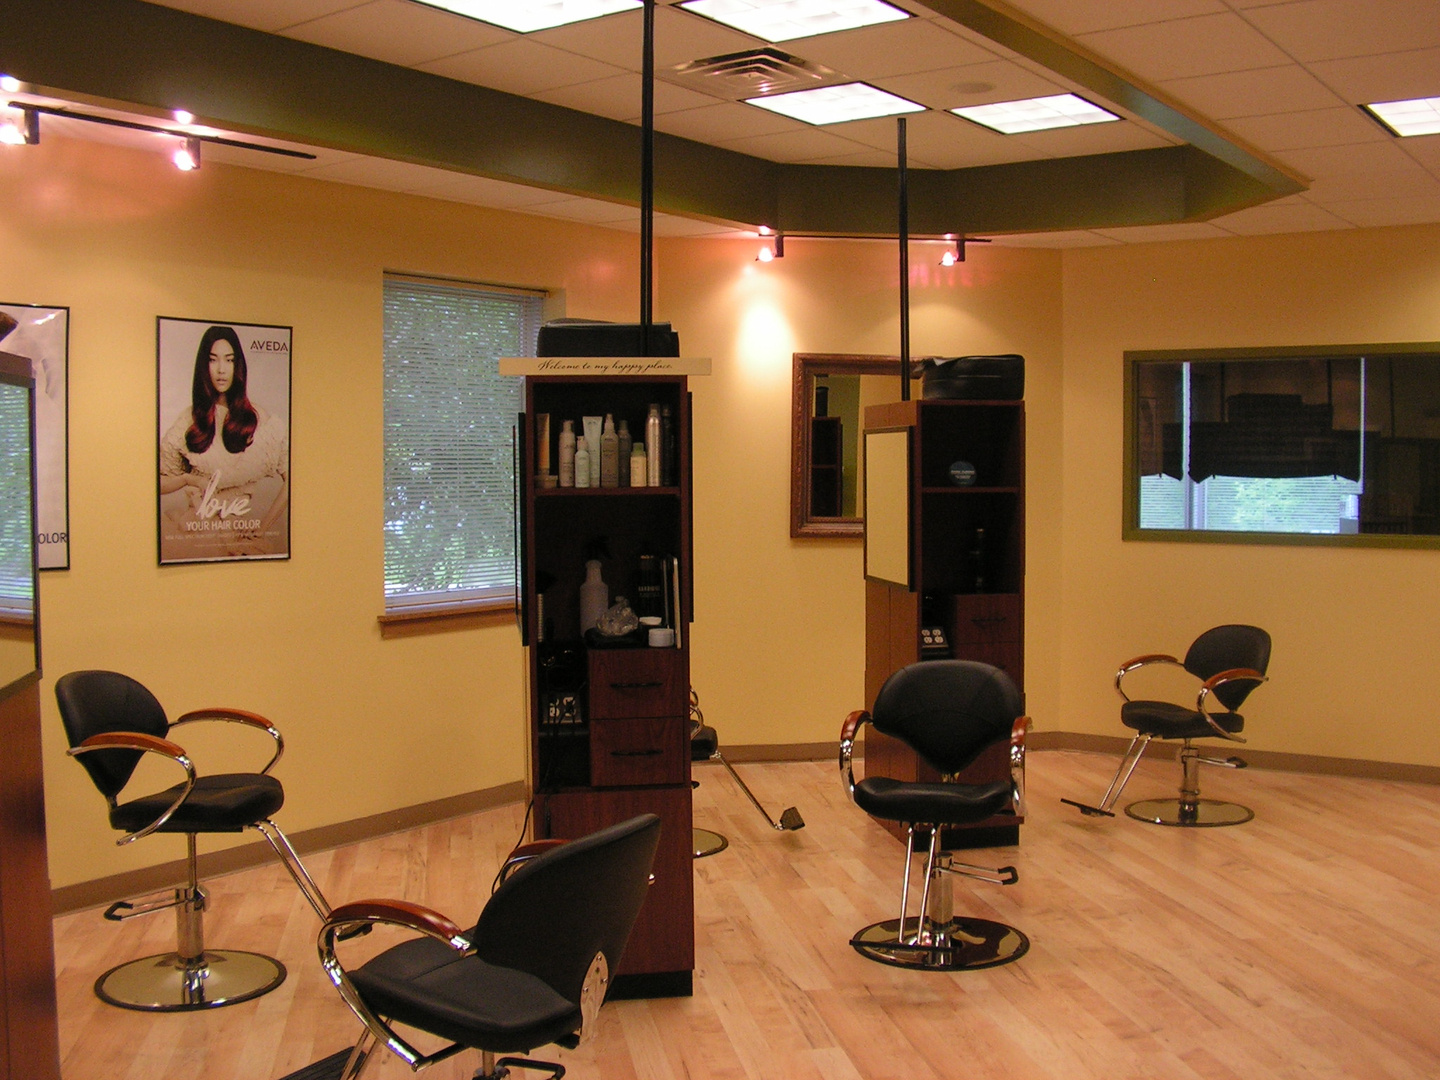 Owner Illness Forces Sale of DelCo Hair Salon - Seller Financing